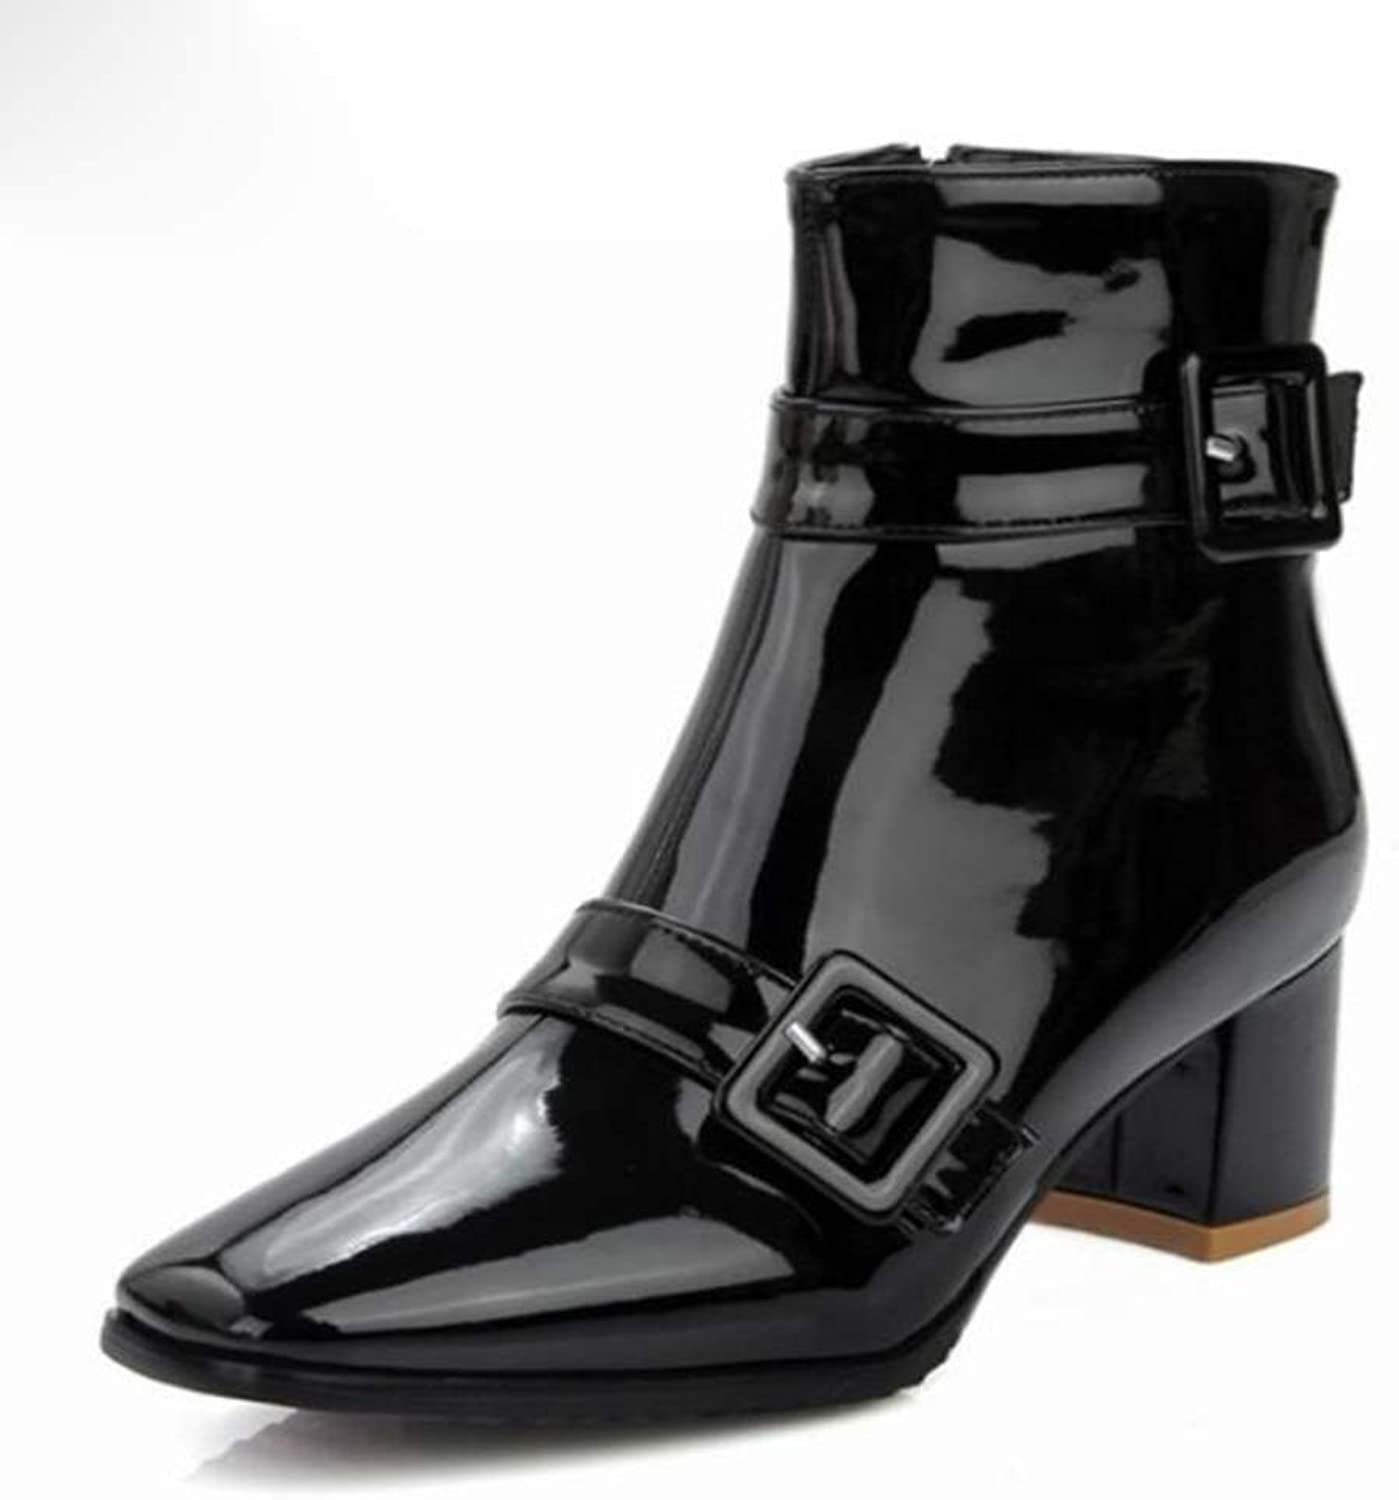 Autumn and Winter Women's Boots Square Buckle Patent Leather Square Head Women's Boots Large Size Martin Boots Thick with Ankle Boots and Ankle Boots